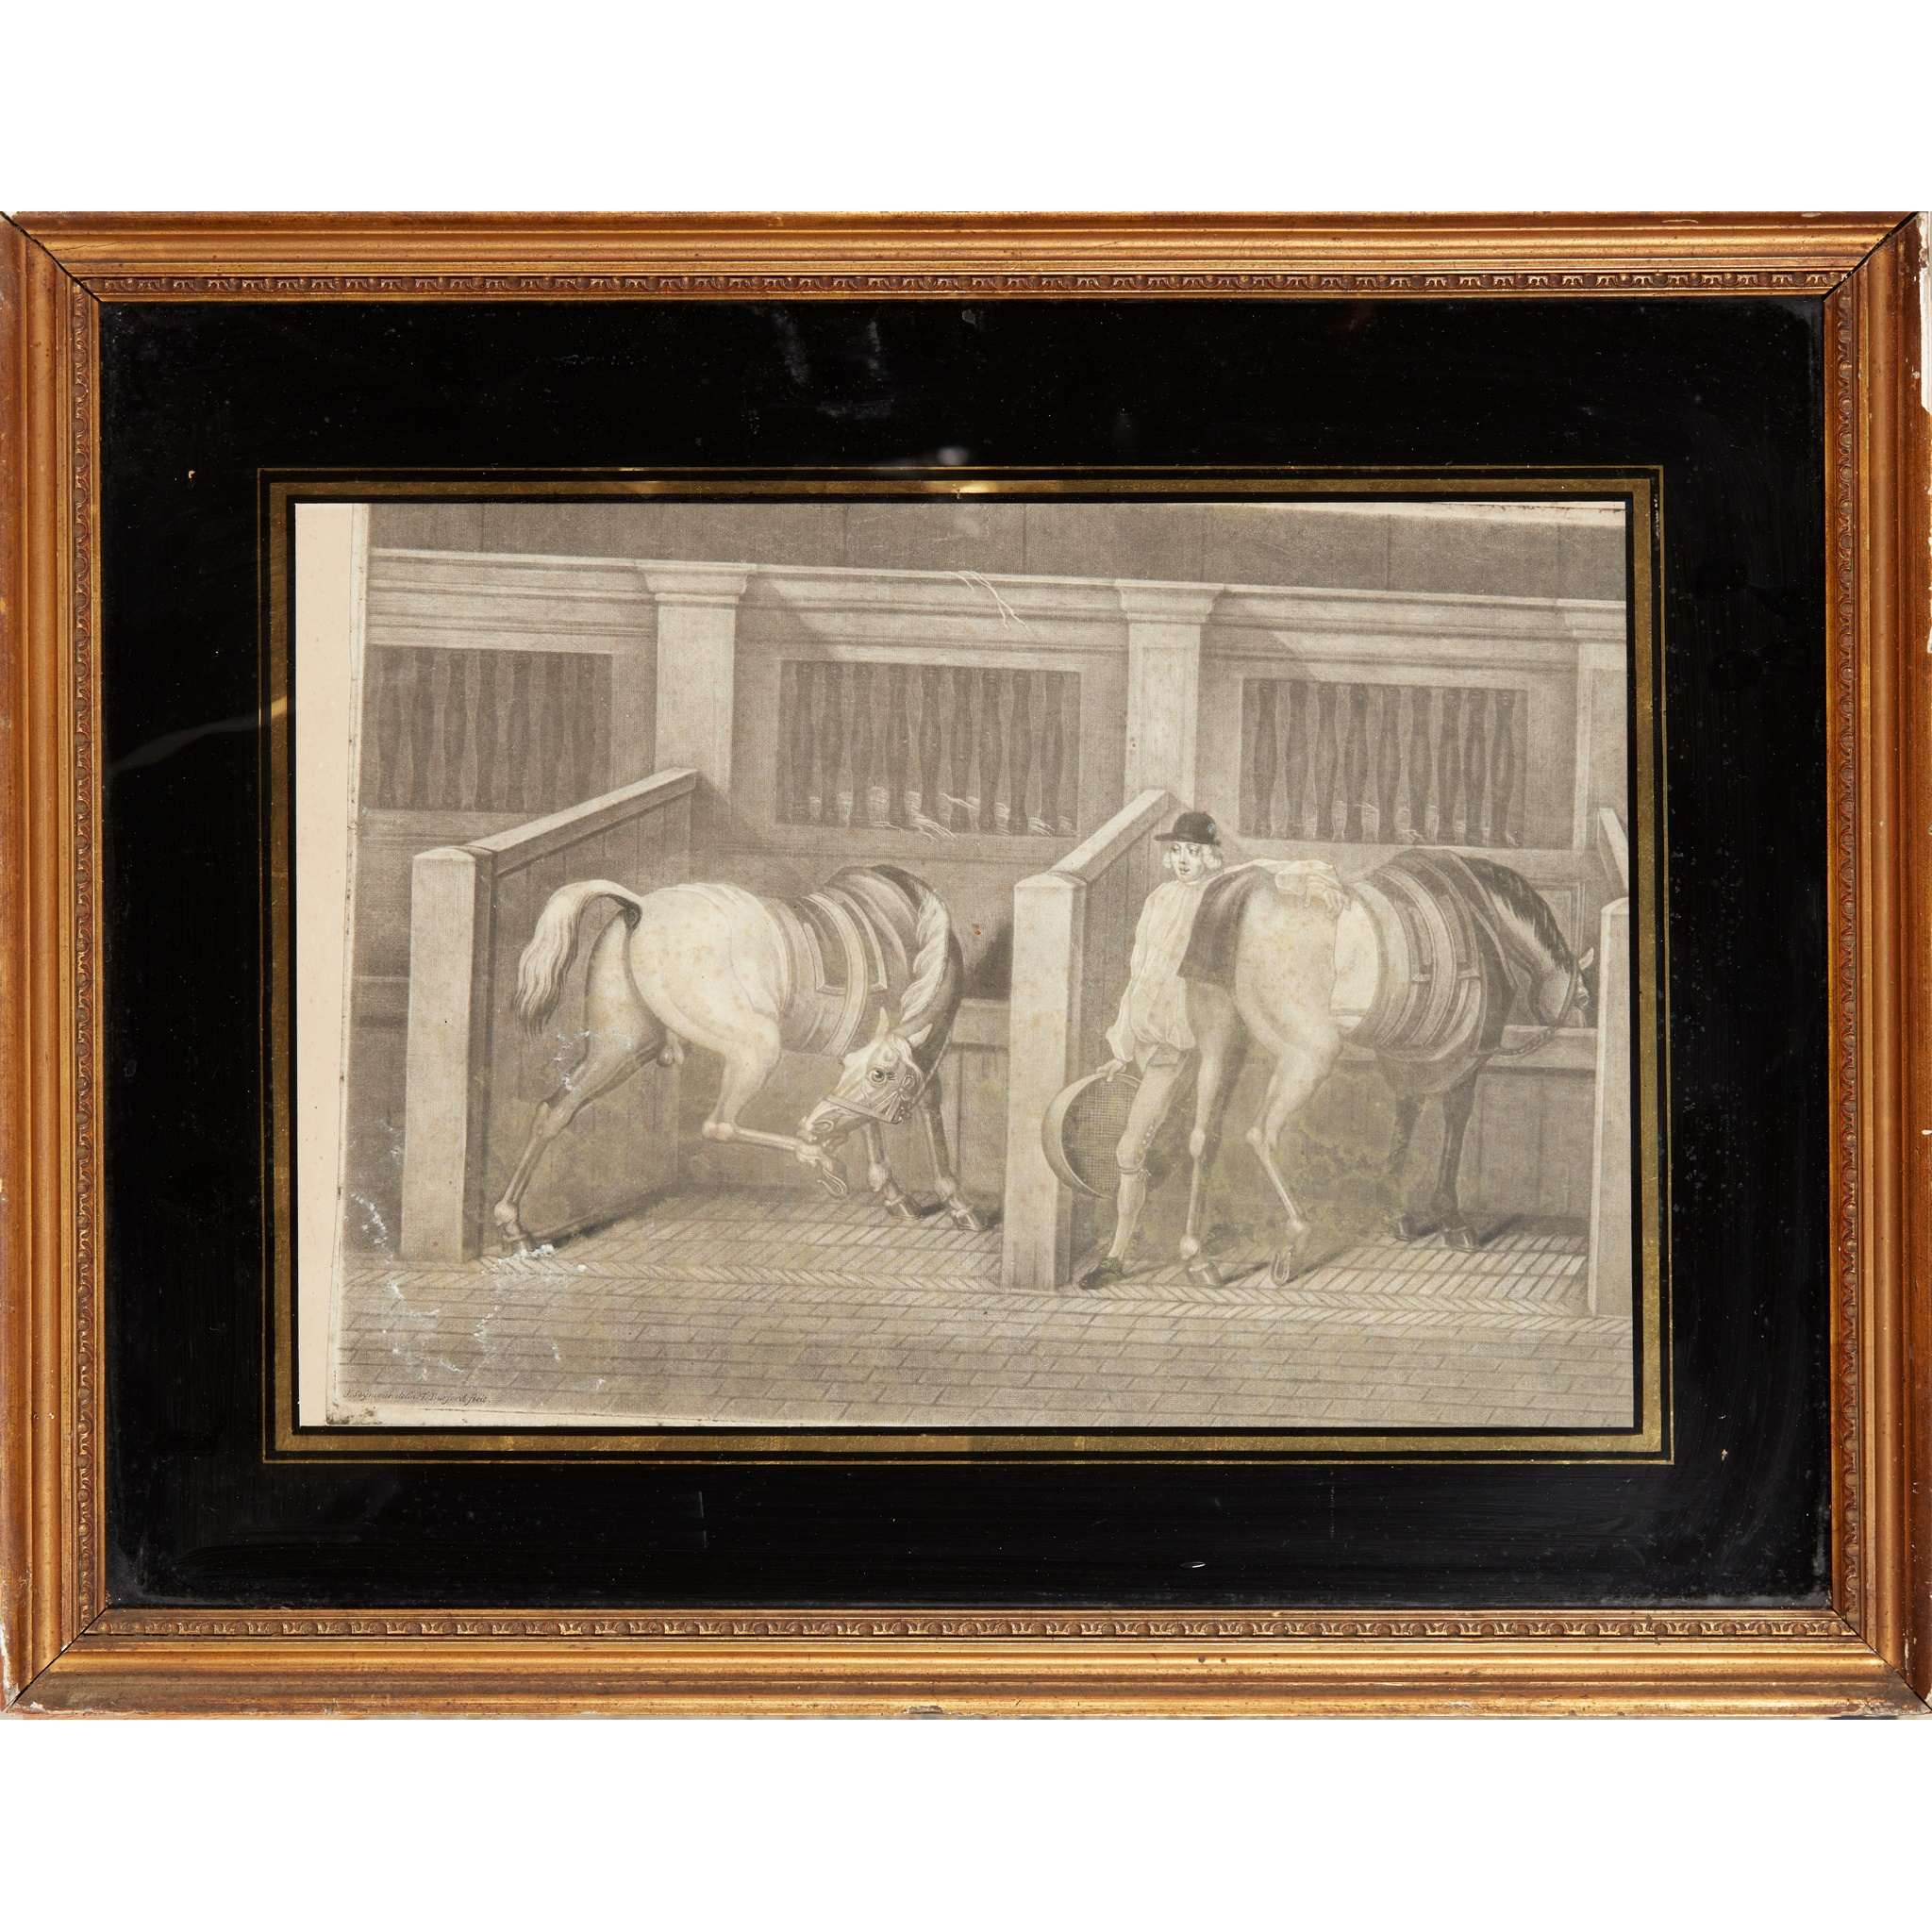 COLLECTION OF ELEVEN MEZZOTINT EQUESTRIAN PRINTS LATE 18TH CENTURY - Image 6 of 8